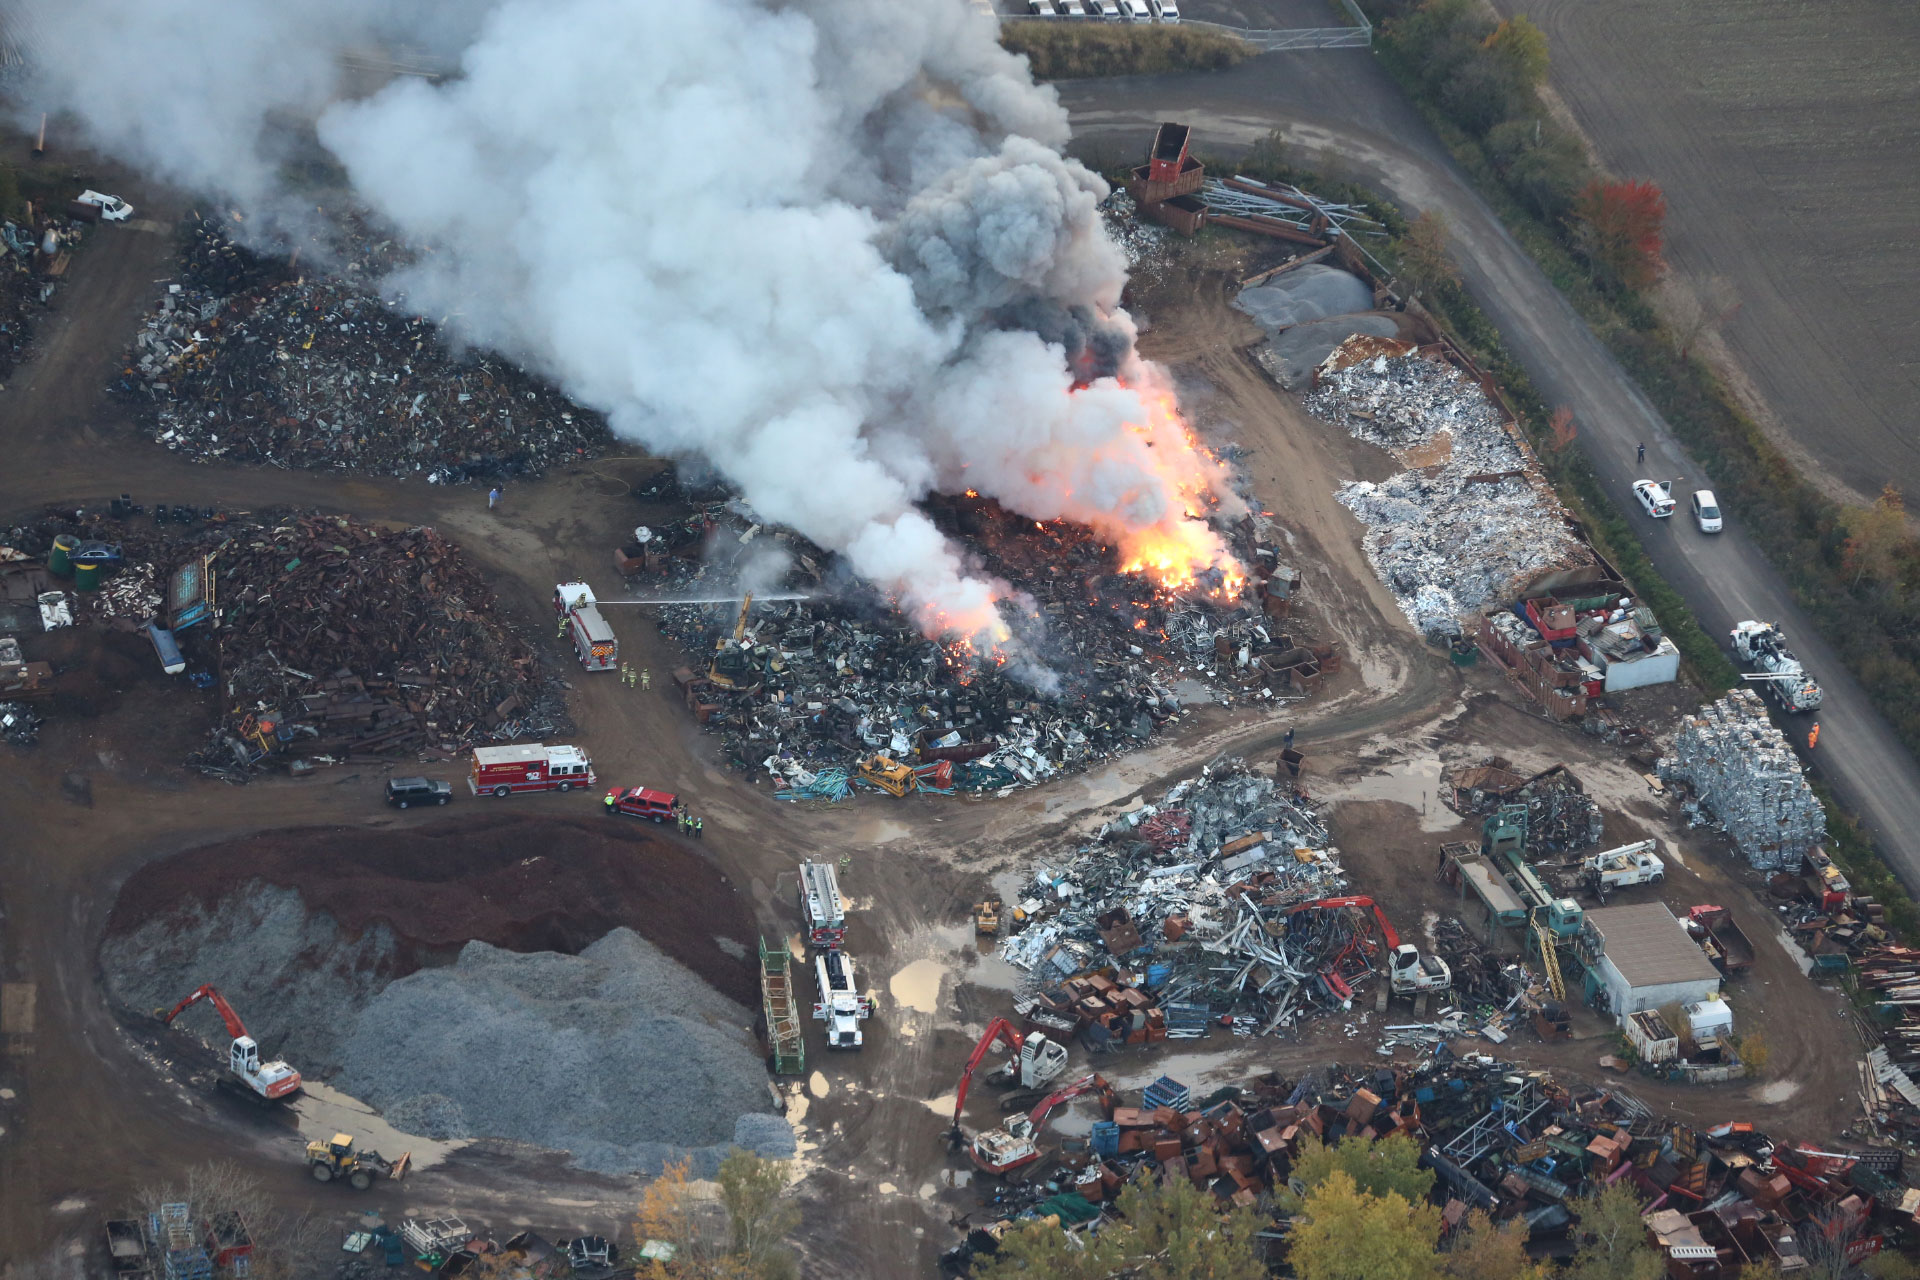 A fire at a scrap metal yard on the east side of Woodbine Avenue, south of Stouffville Road, on Oct. 15, 2015. 680 NEWS/Darryl Dahmer